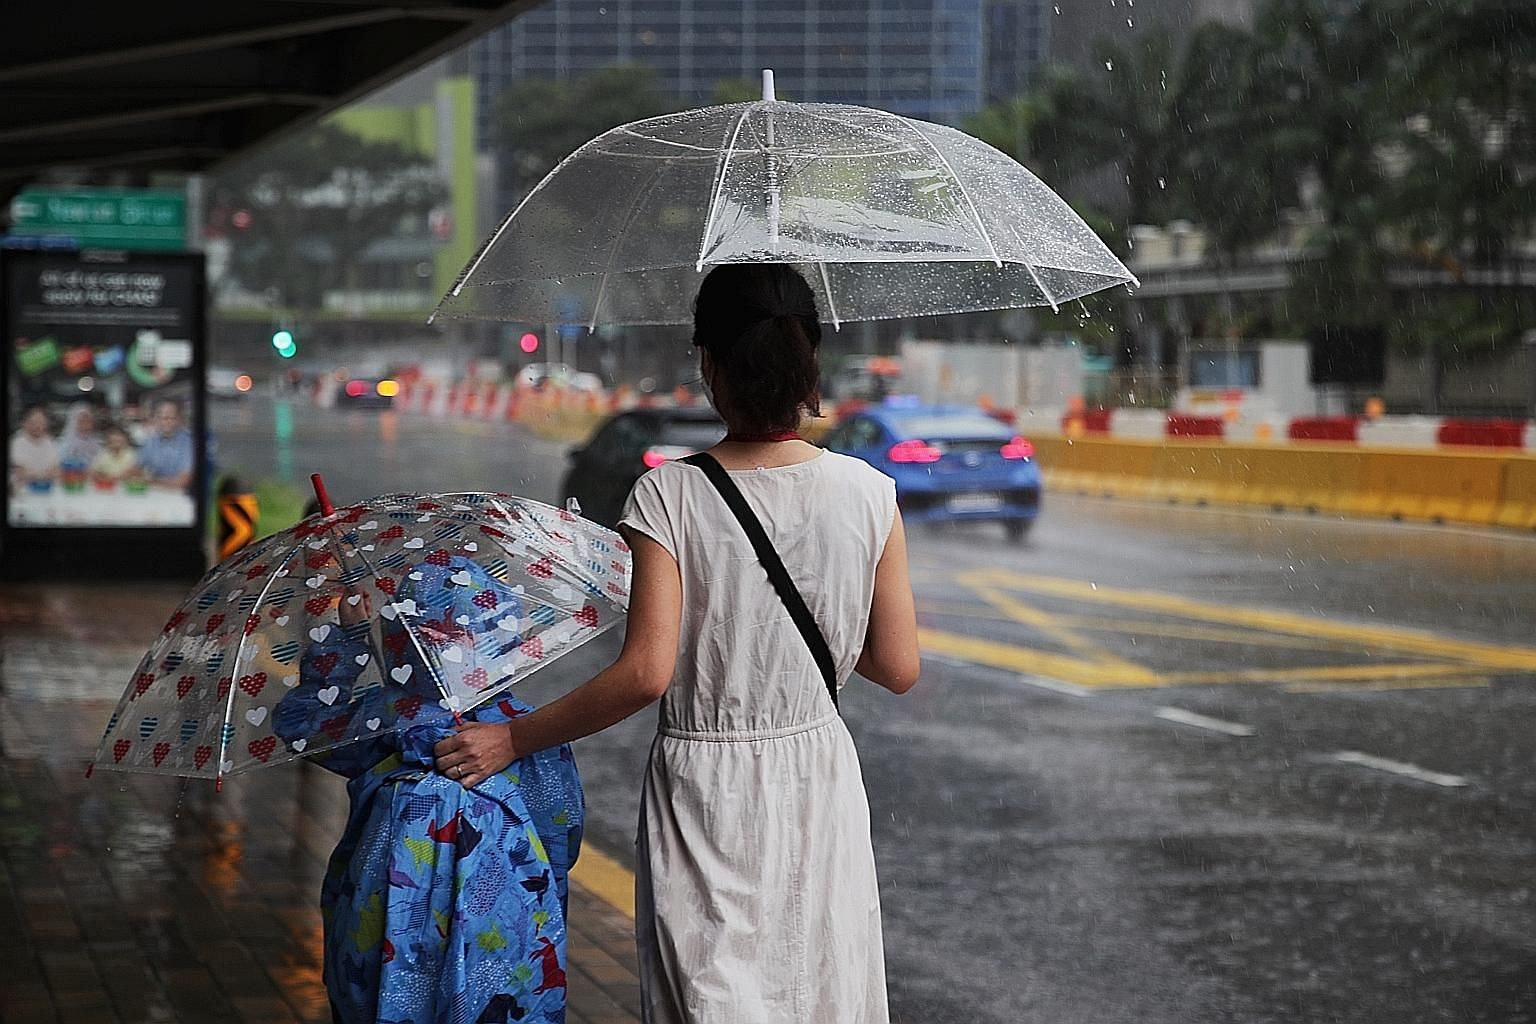 Less rain is expected in Singapore for the rest of the month, but the weatherman has declared the onset of La Nina-like conditions in the region this month, after being on watch since July for the climate phenomenon that brings more rain to South-Eas